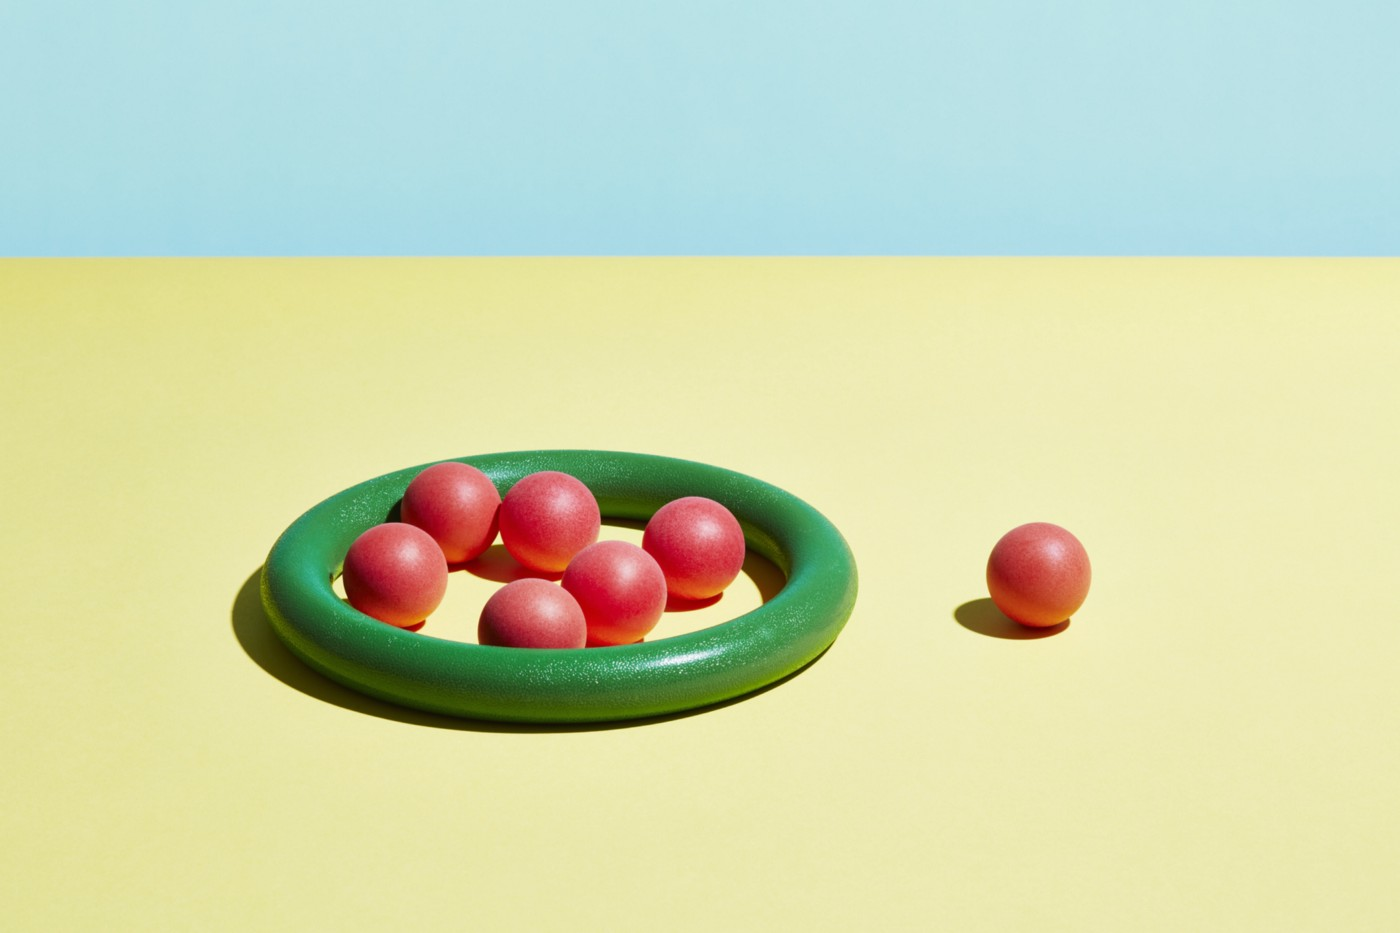 A single red sphere sits outside a group of red spheres contained within a green hoop.